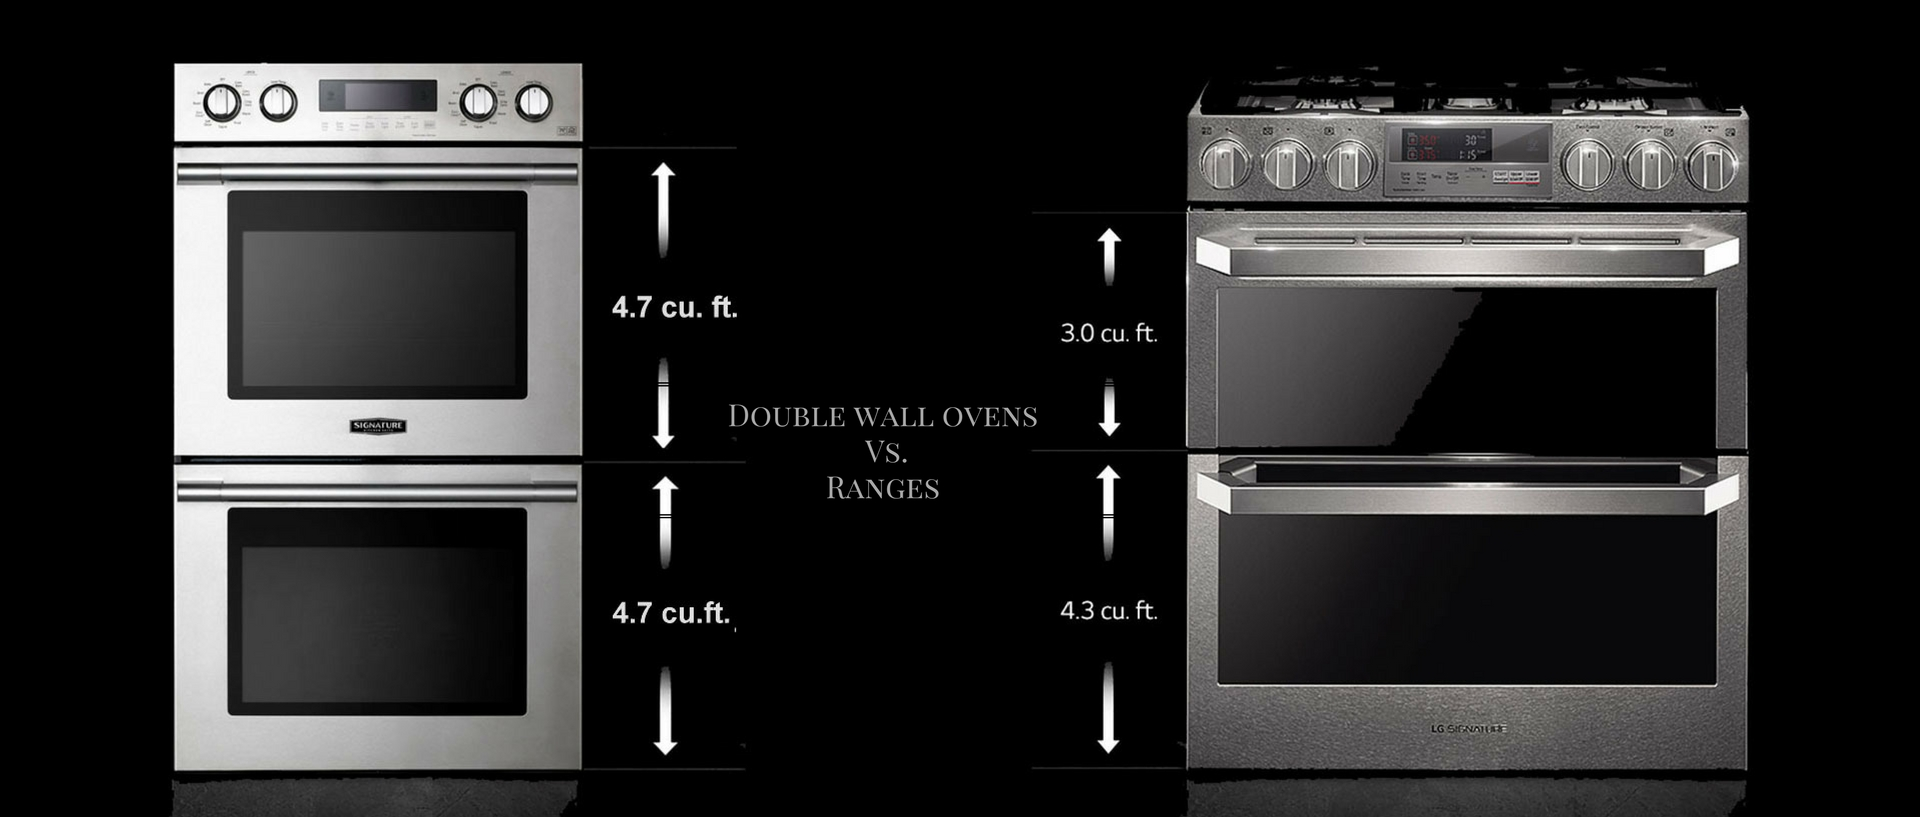 Large Capacity Ovens Liances